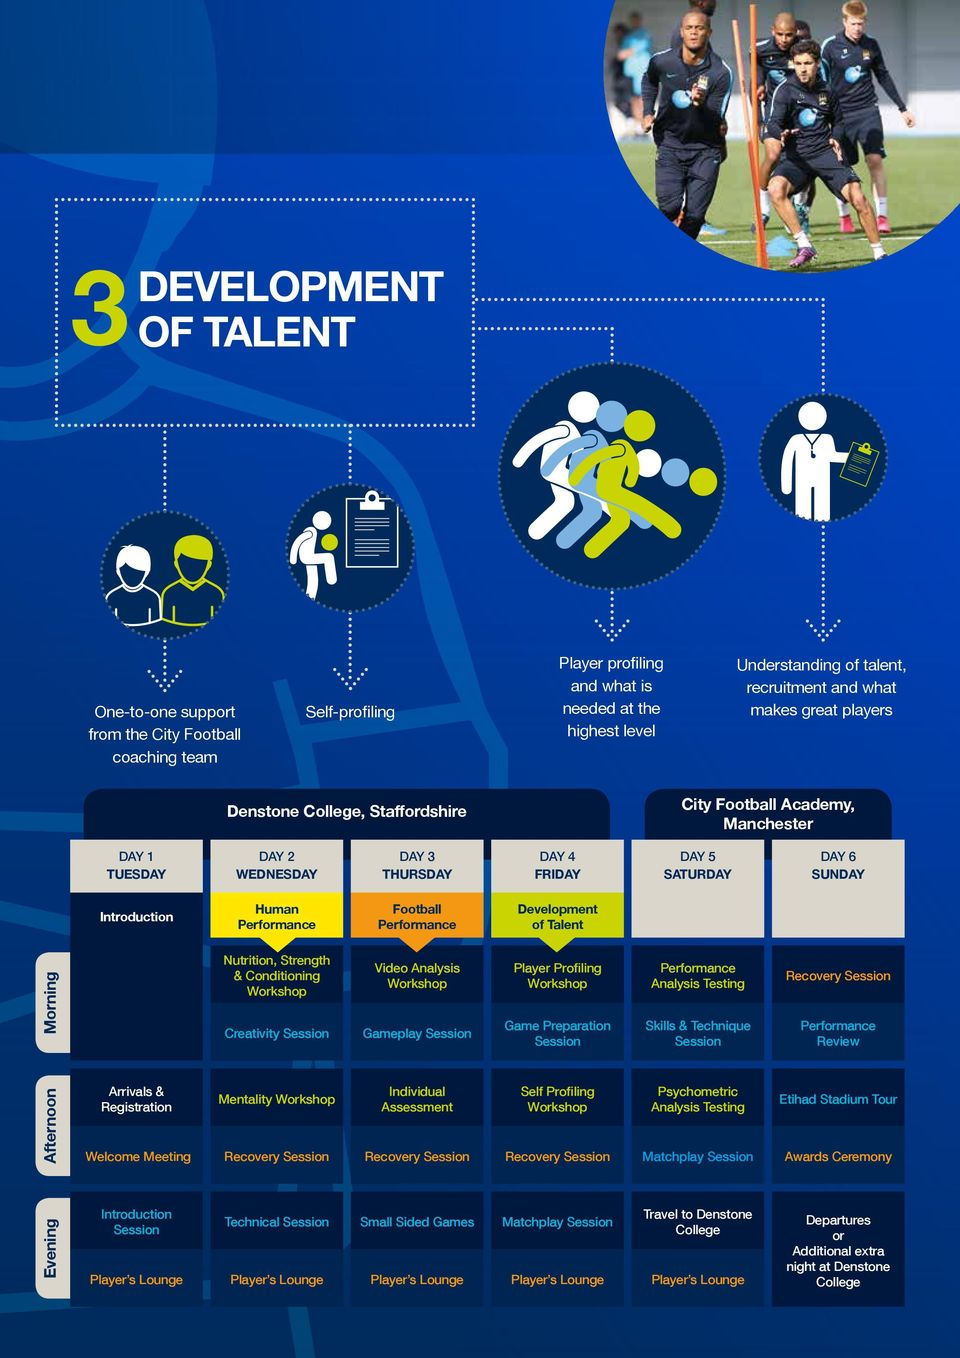 Performance Football Performance Development of Talent Morning Nutrition, Strength & Conditioning Workshop Creativity Session Video Analysis Workshop Gameplay Session Player Profiling Workshop Game